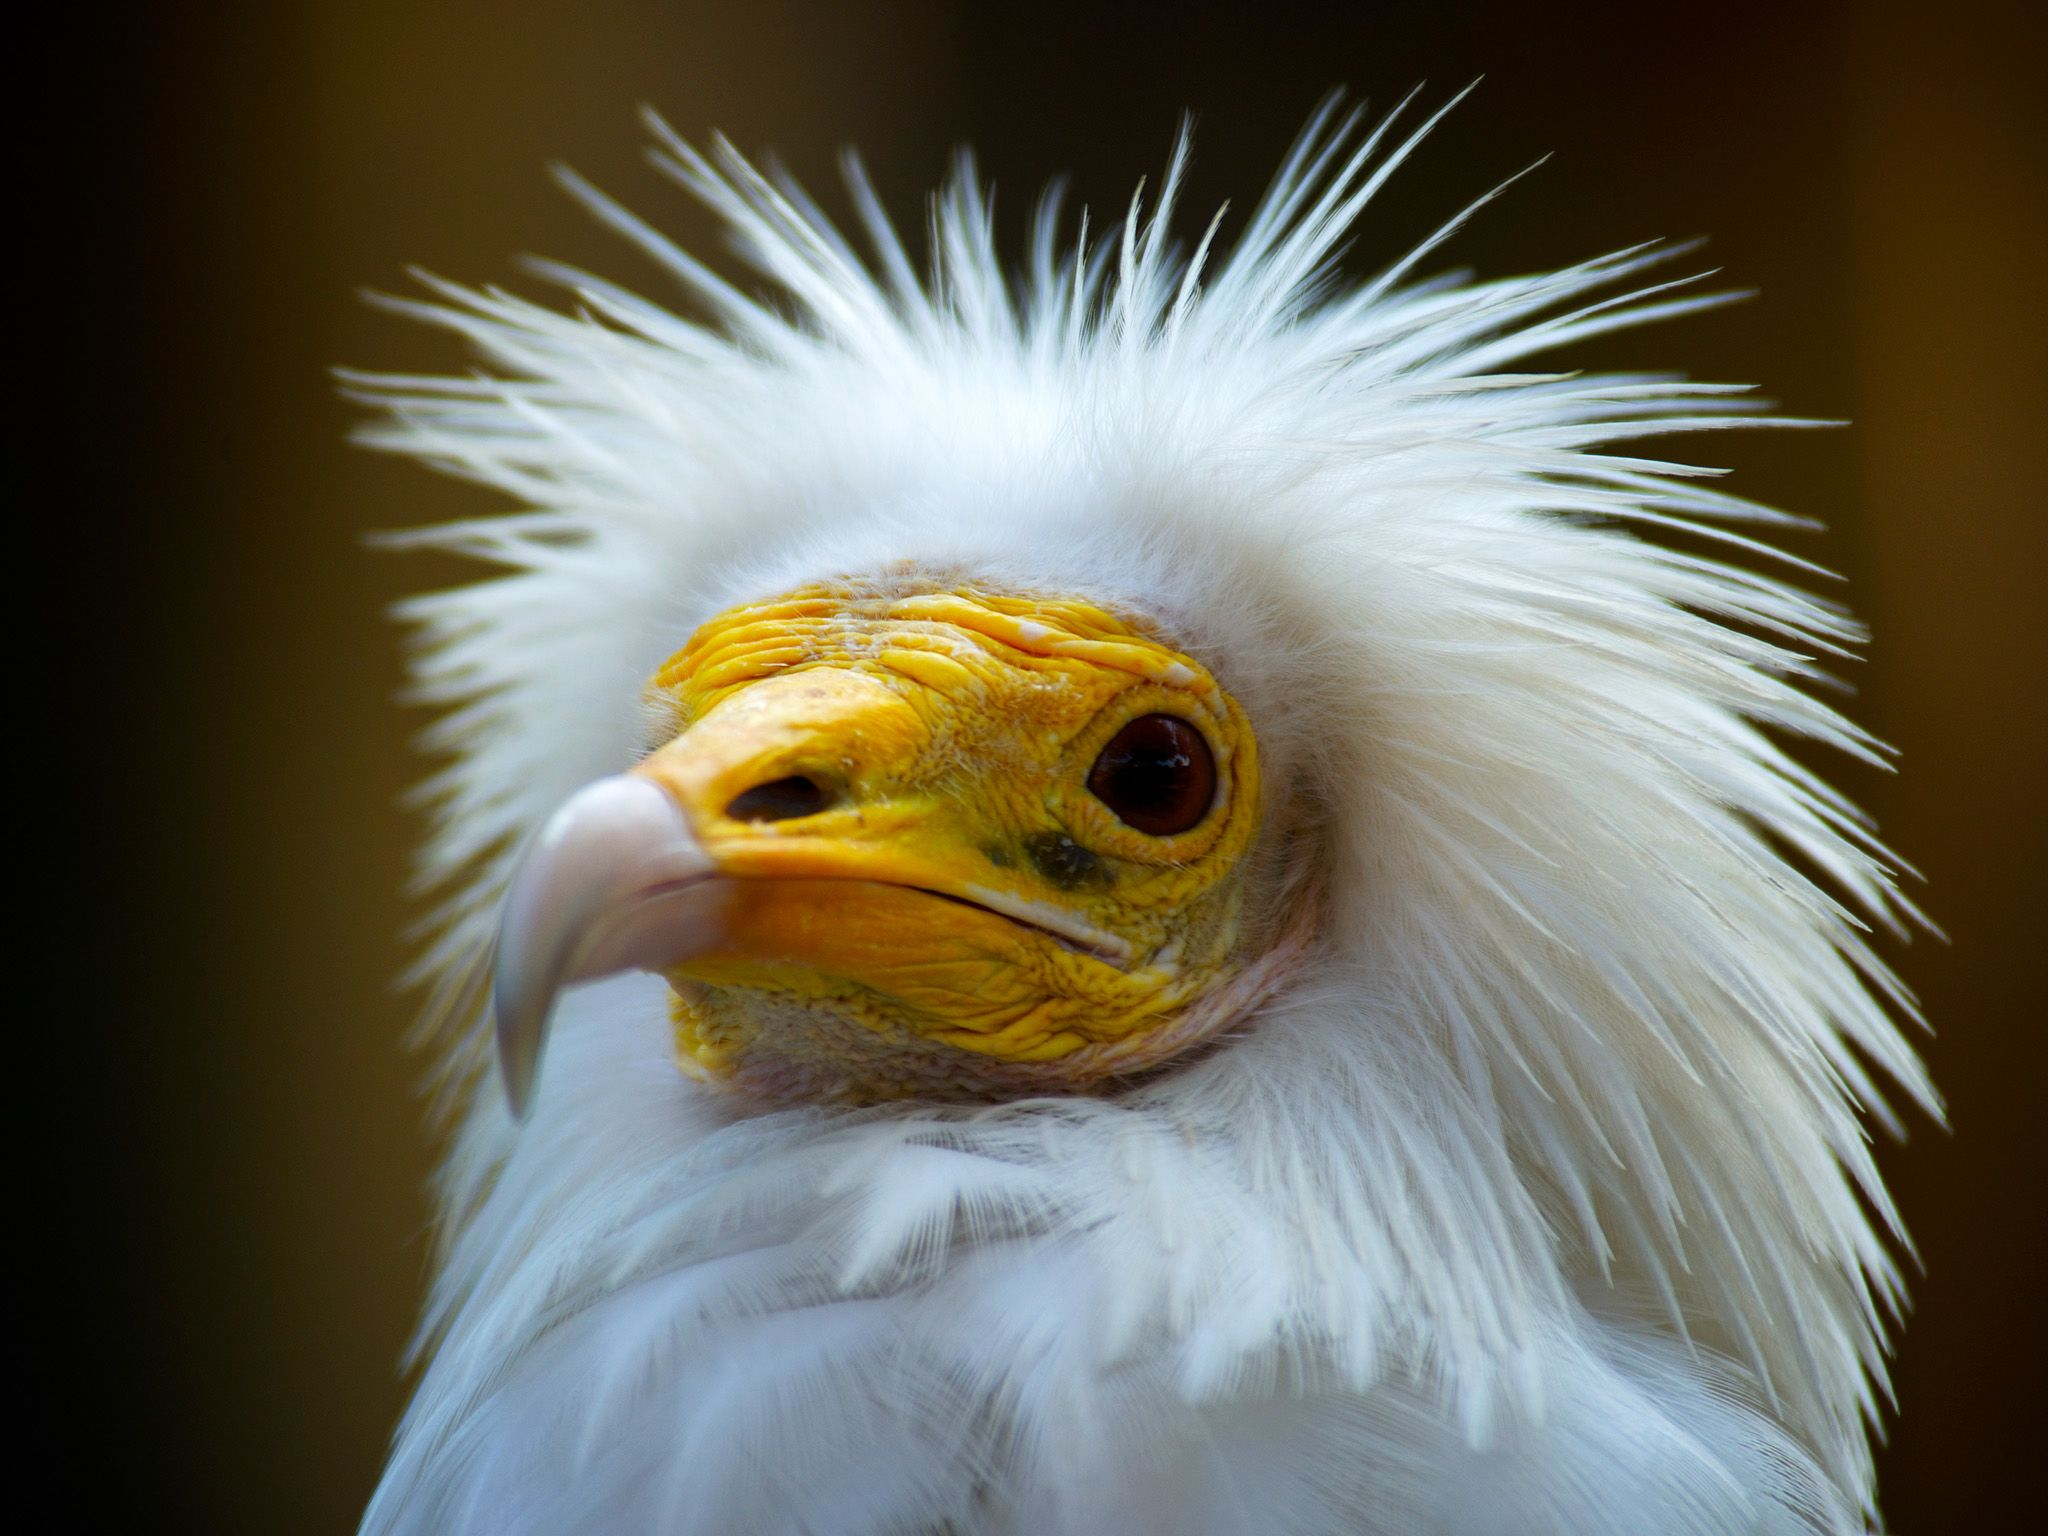 Bikaner, India: Egyptian vulture. A new look at humankind's relationship with the wildest... [Photo of the day - March 2015]